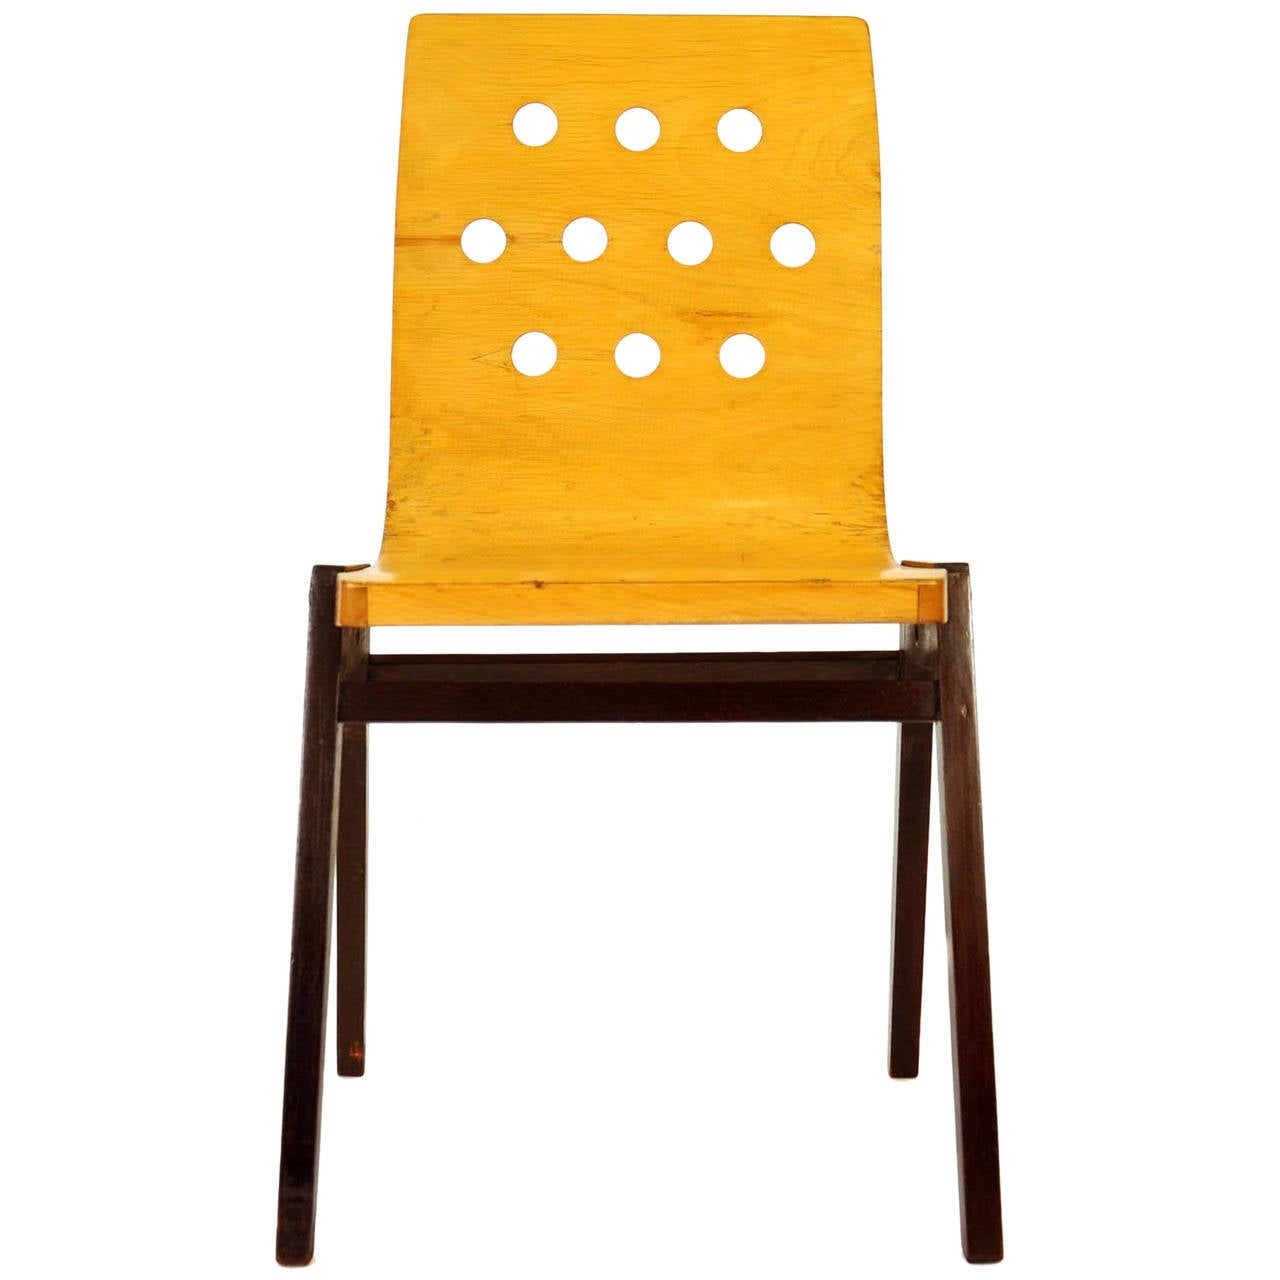 stacking chairs by roland rainer austria 1